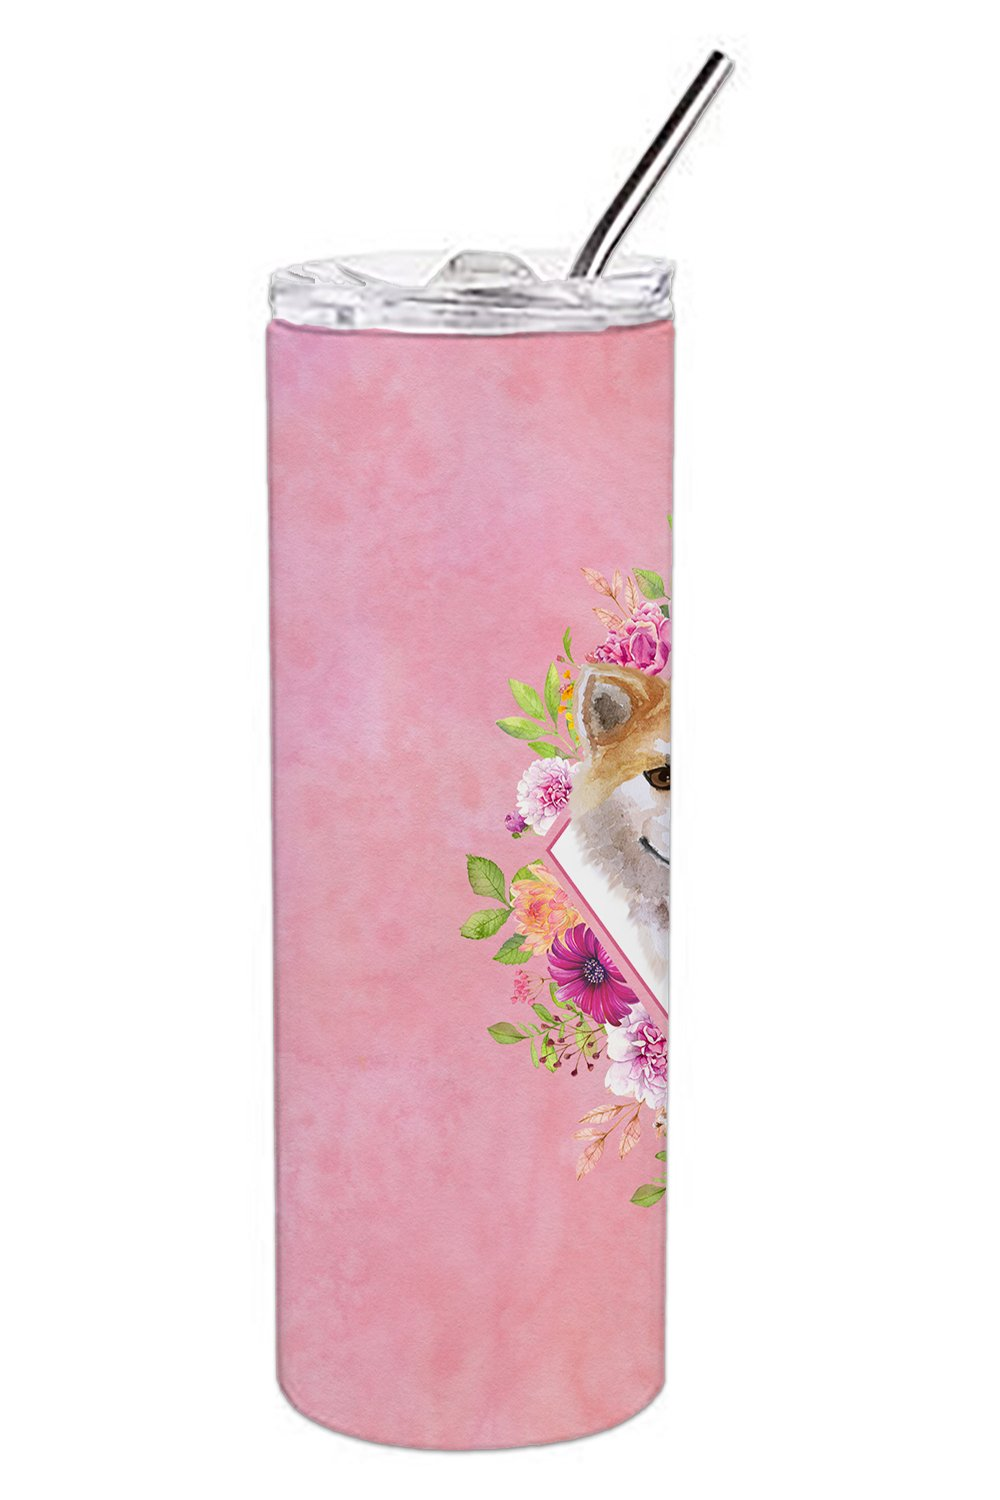 Shiba Inu Pink Flowers Double Walled Stainless Steel 20 oz Skinny Tumbler CK4183TBL20 by Caroline's Treasures